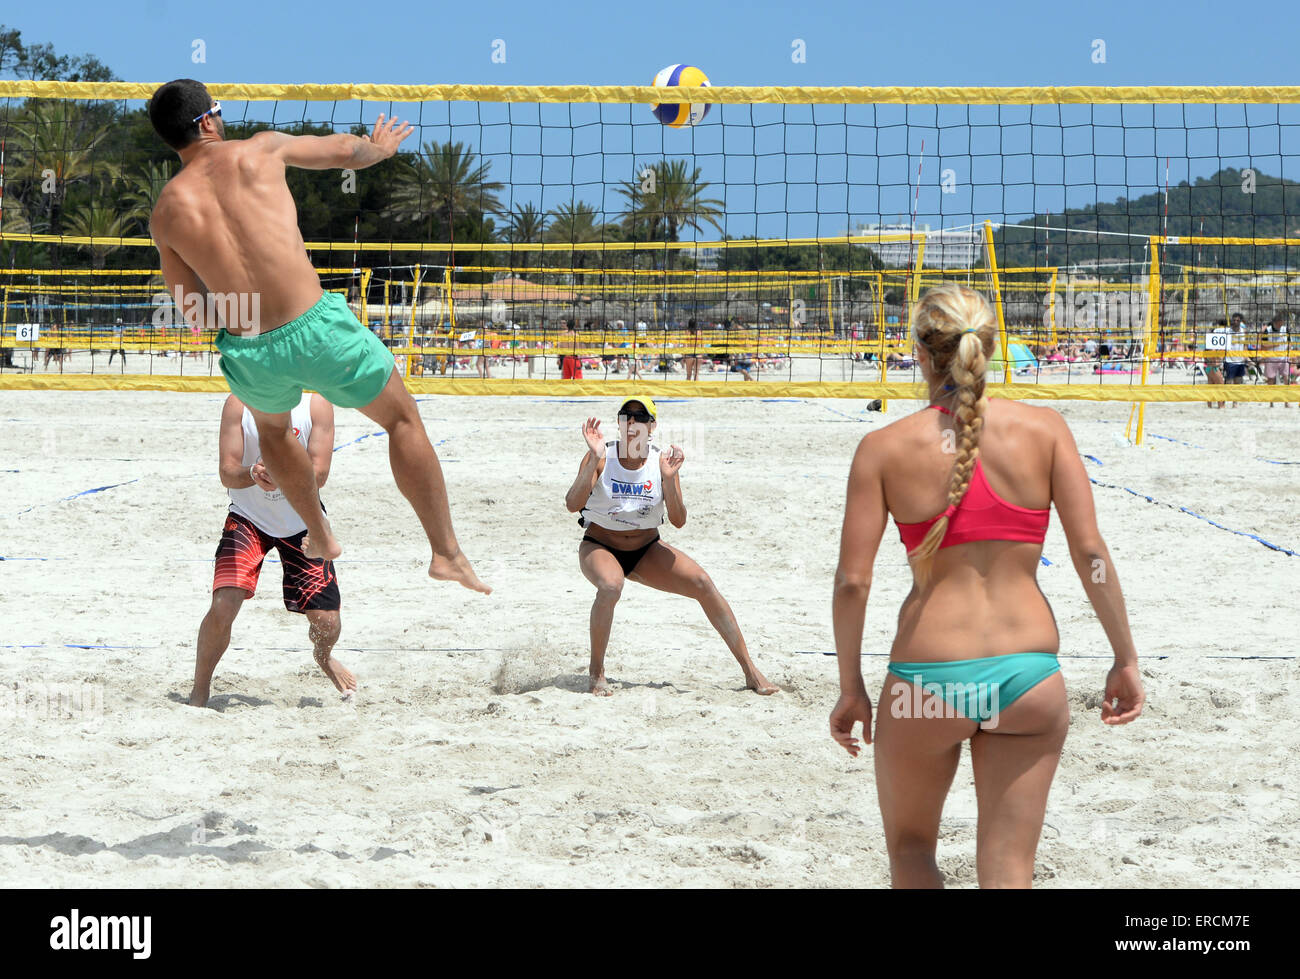 Mixed Beach Volleyball Tournament Between Boys And Girls On The Beach Stock Photo Alamy